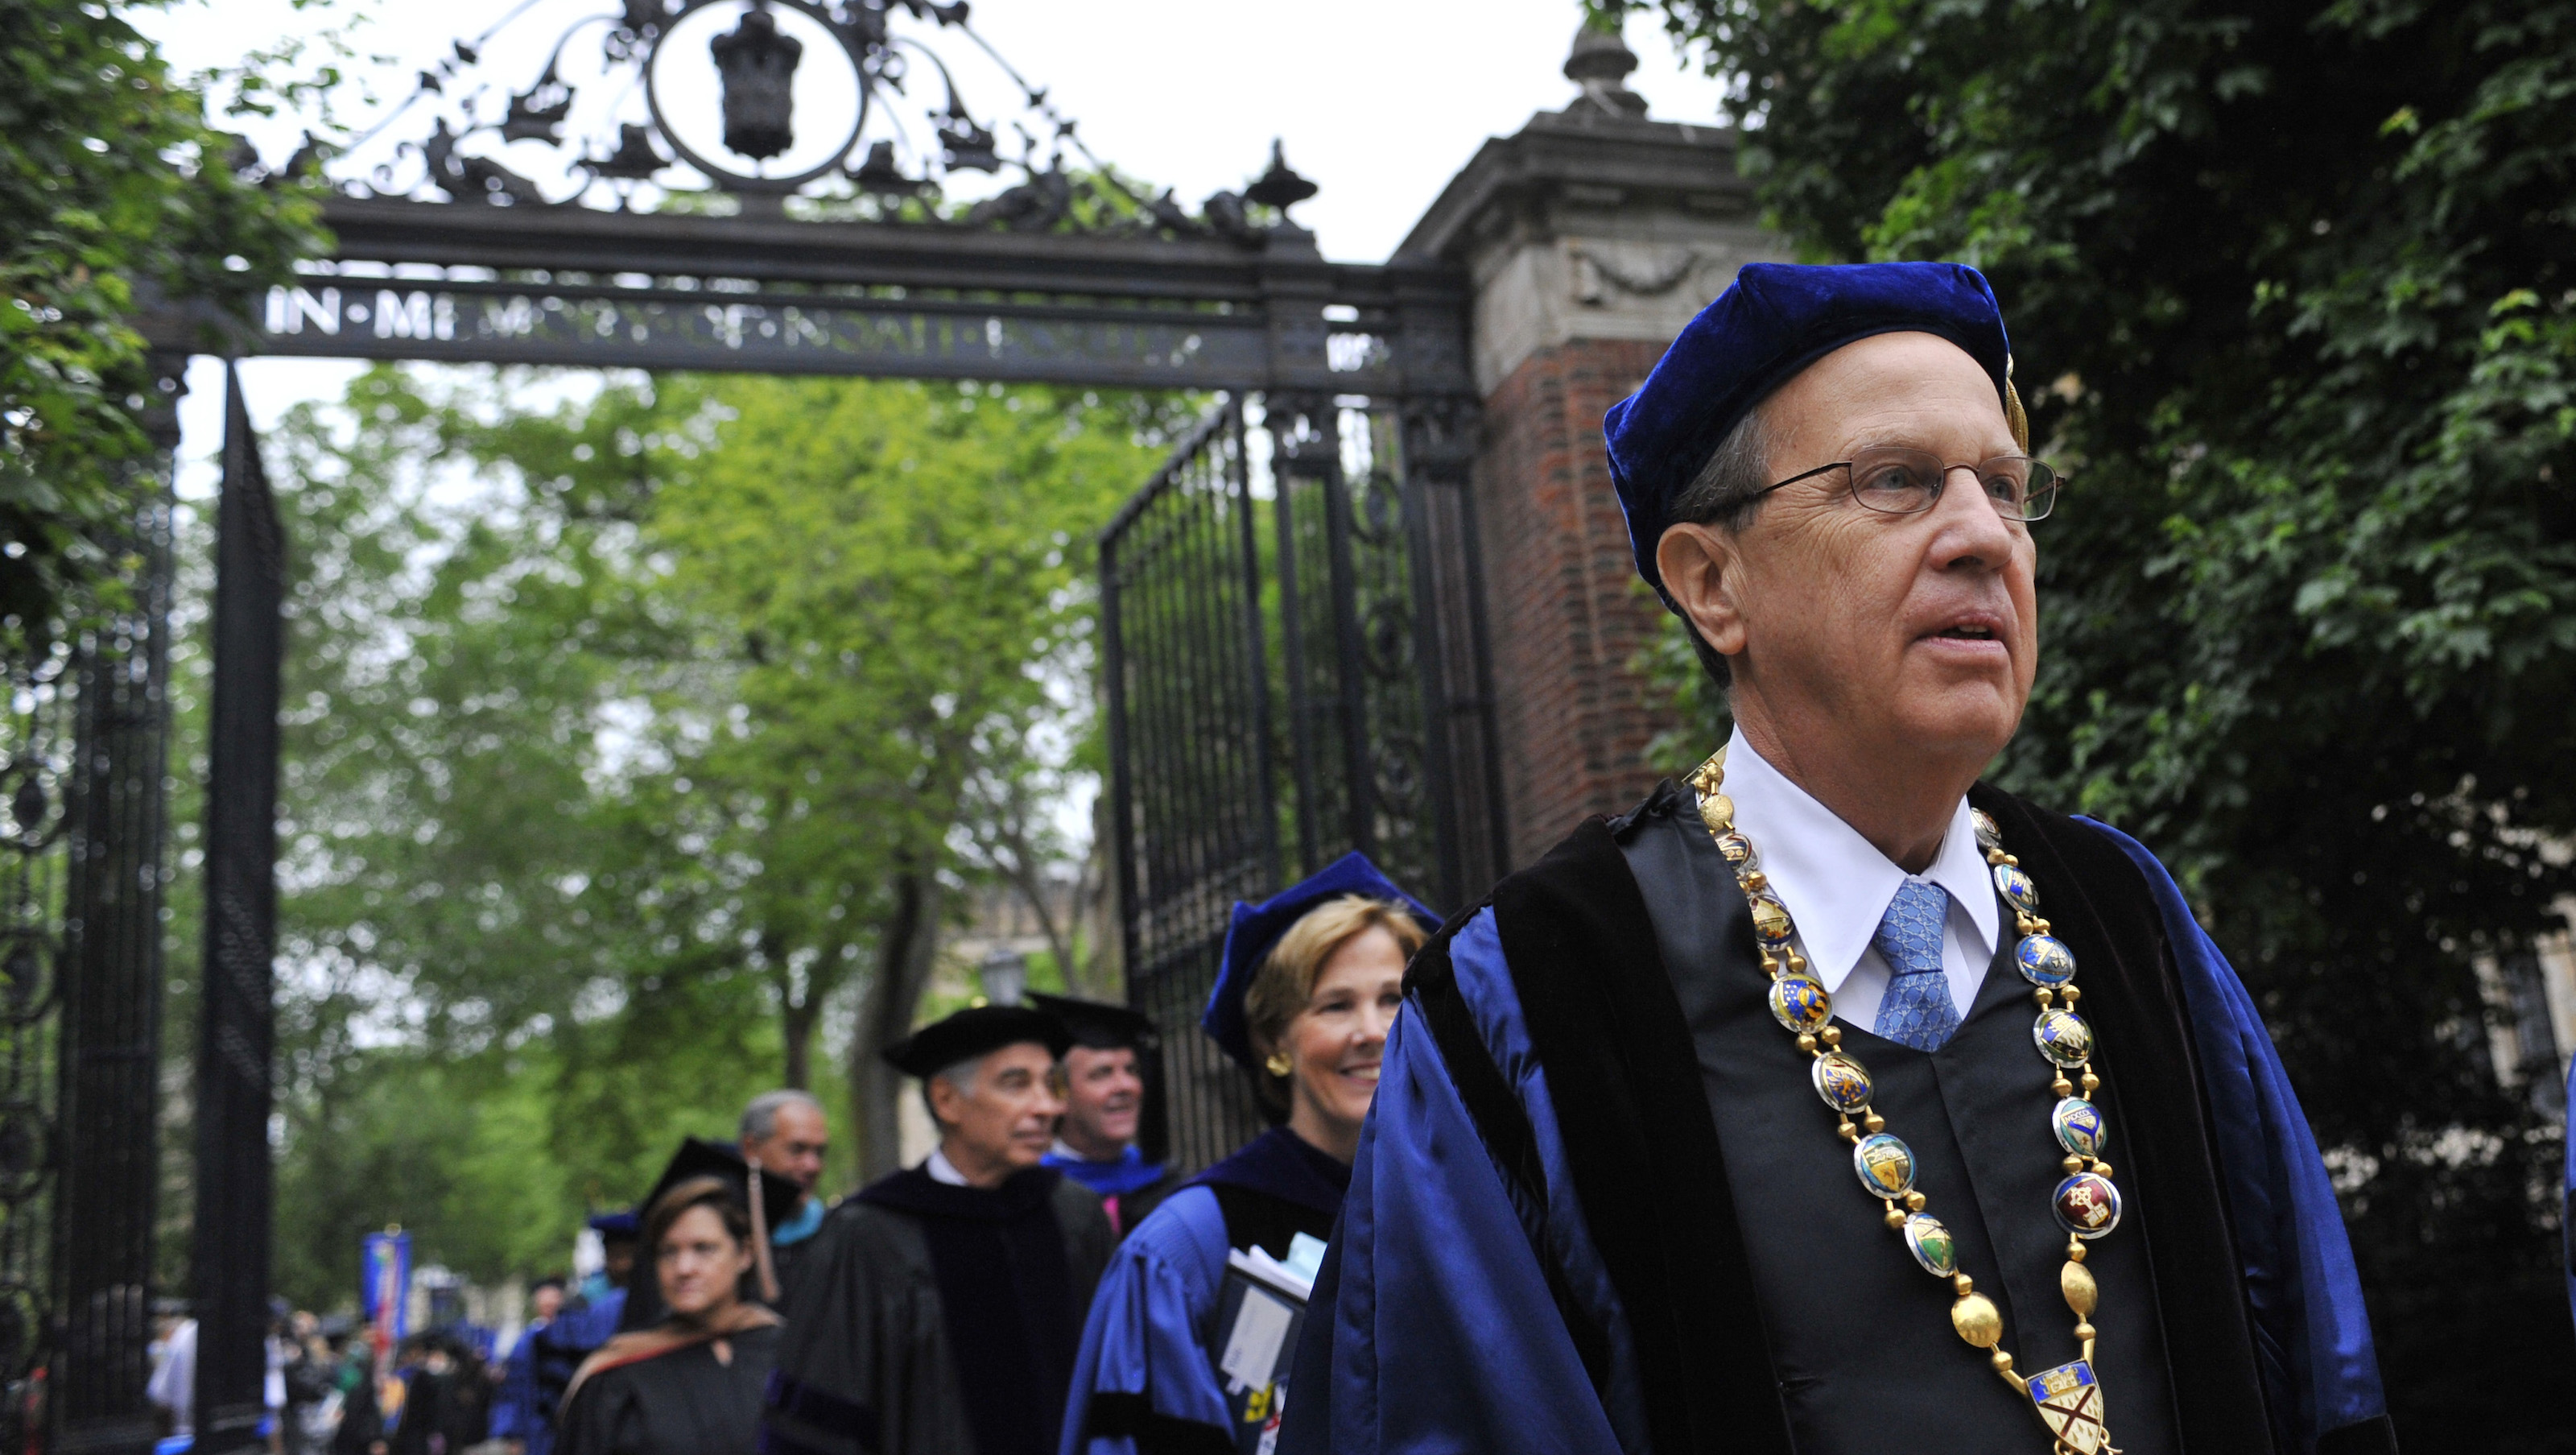 Yale University president Richard Levin, right, leads a procession during Yale's commencement exercises in New Haven, Conn., Monday, May 21, 2012.  (AP Photo/Jessica Hill)